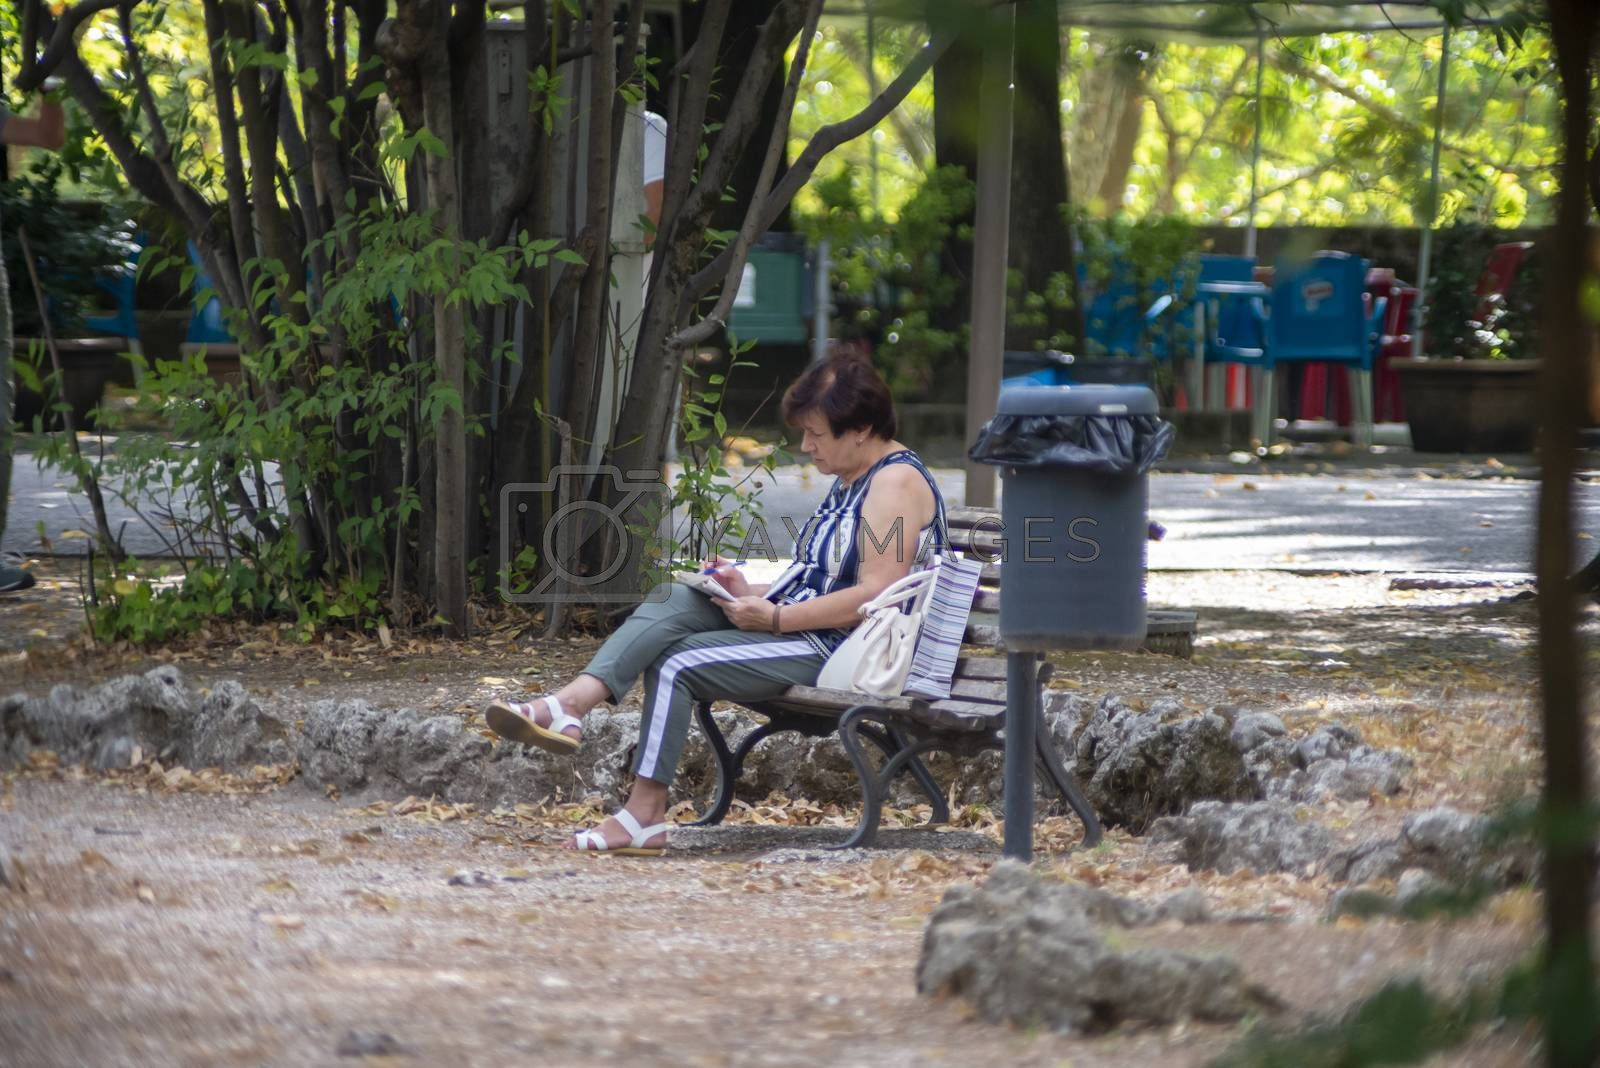 terni,italy august 16 2020:woman in the park alone cause covid 19